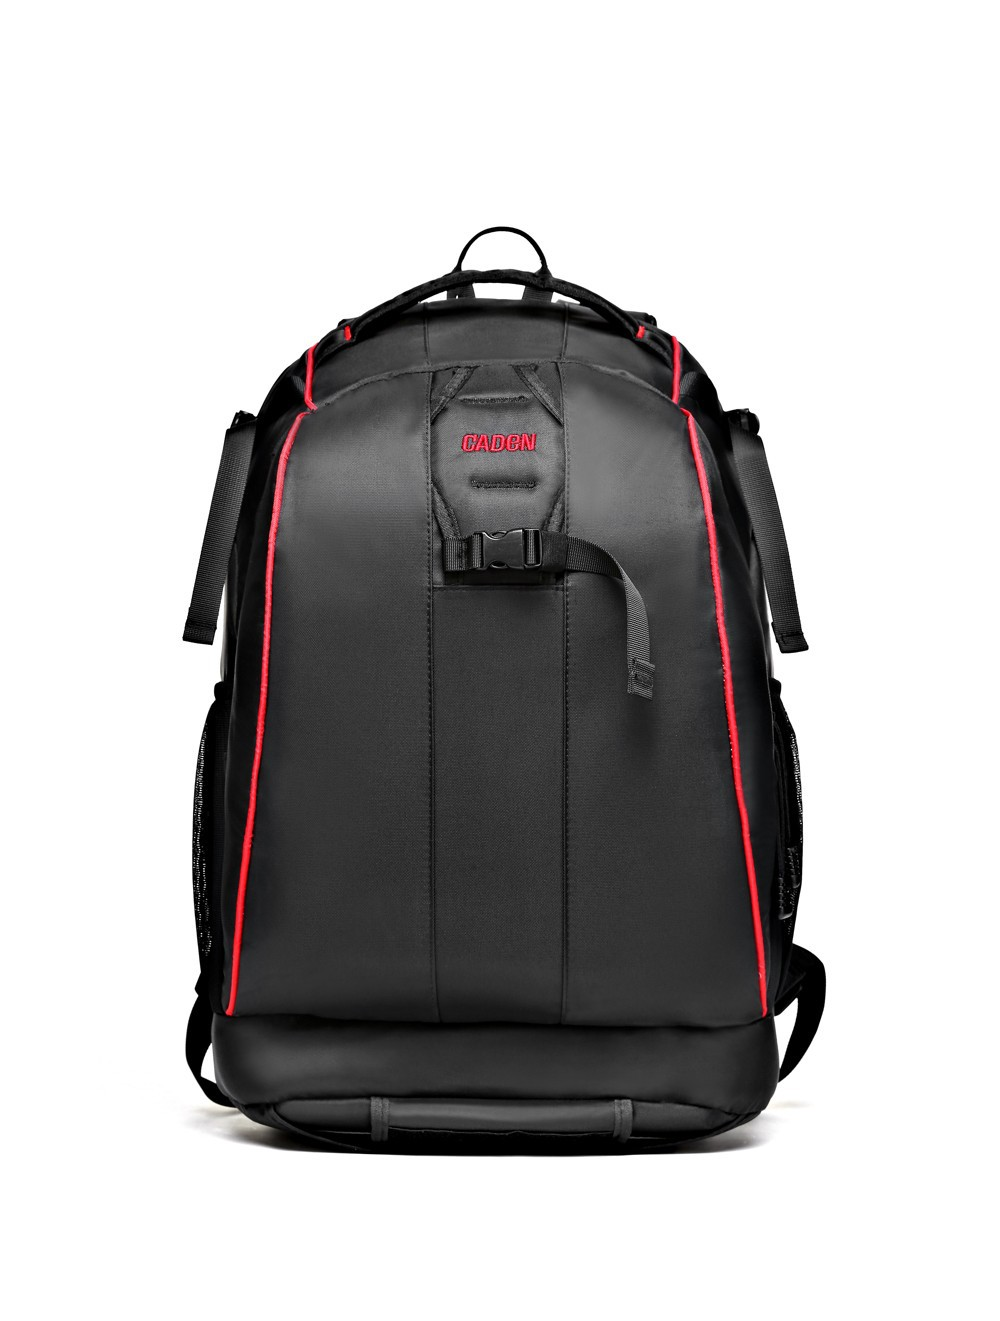 Caden K7 Camera Backpack Bag Case for Canon Nikon Sony DSLR Traveler Lens Camcorder Tablet PC Bag caden camera bag dslr backpack laptop video photo bags waterproof protective carry case with rain cover for sony canon nikon k8